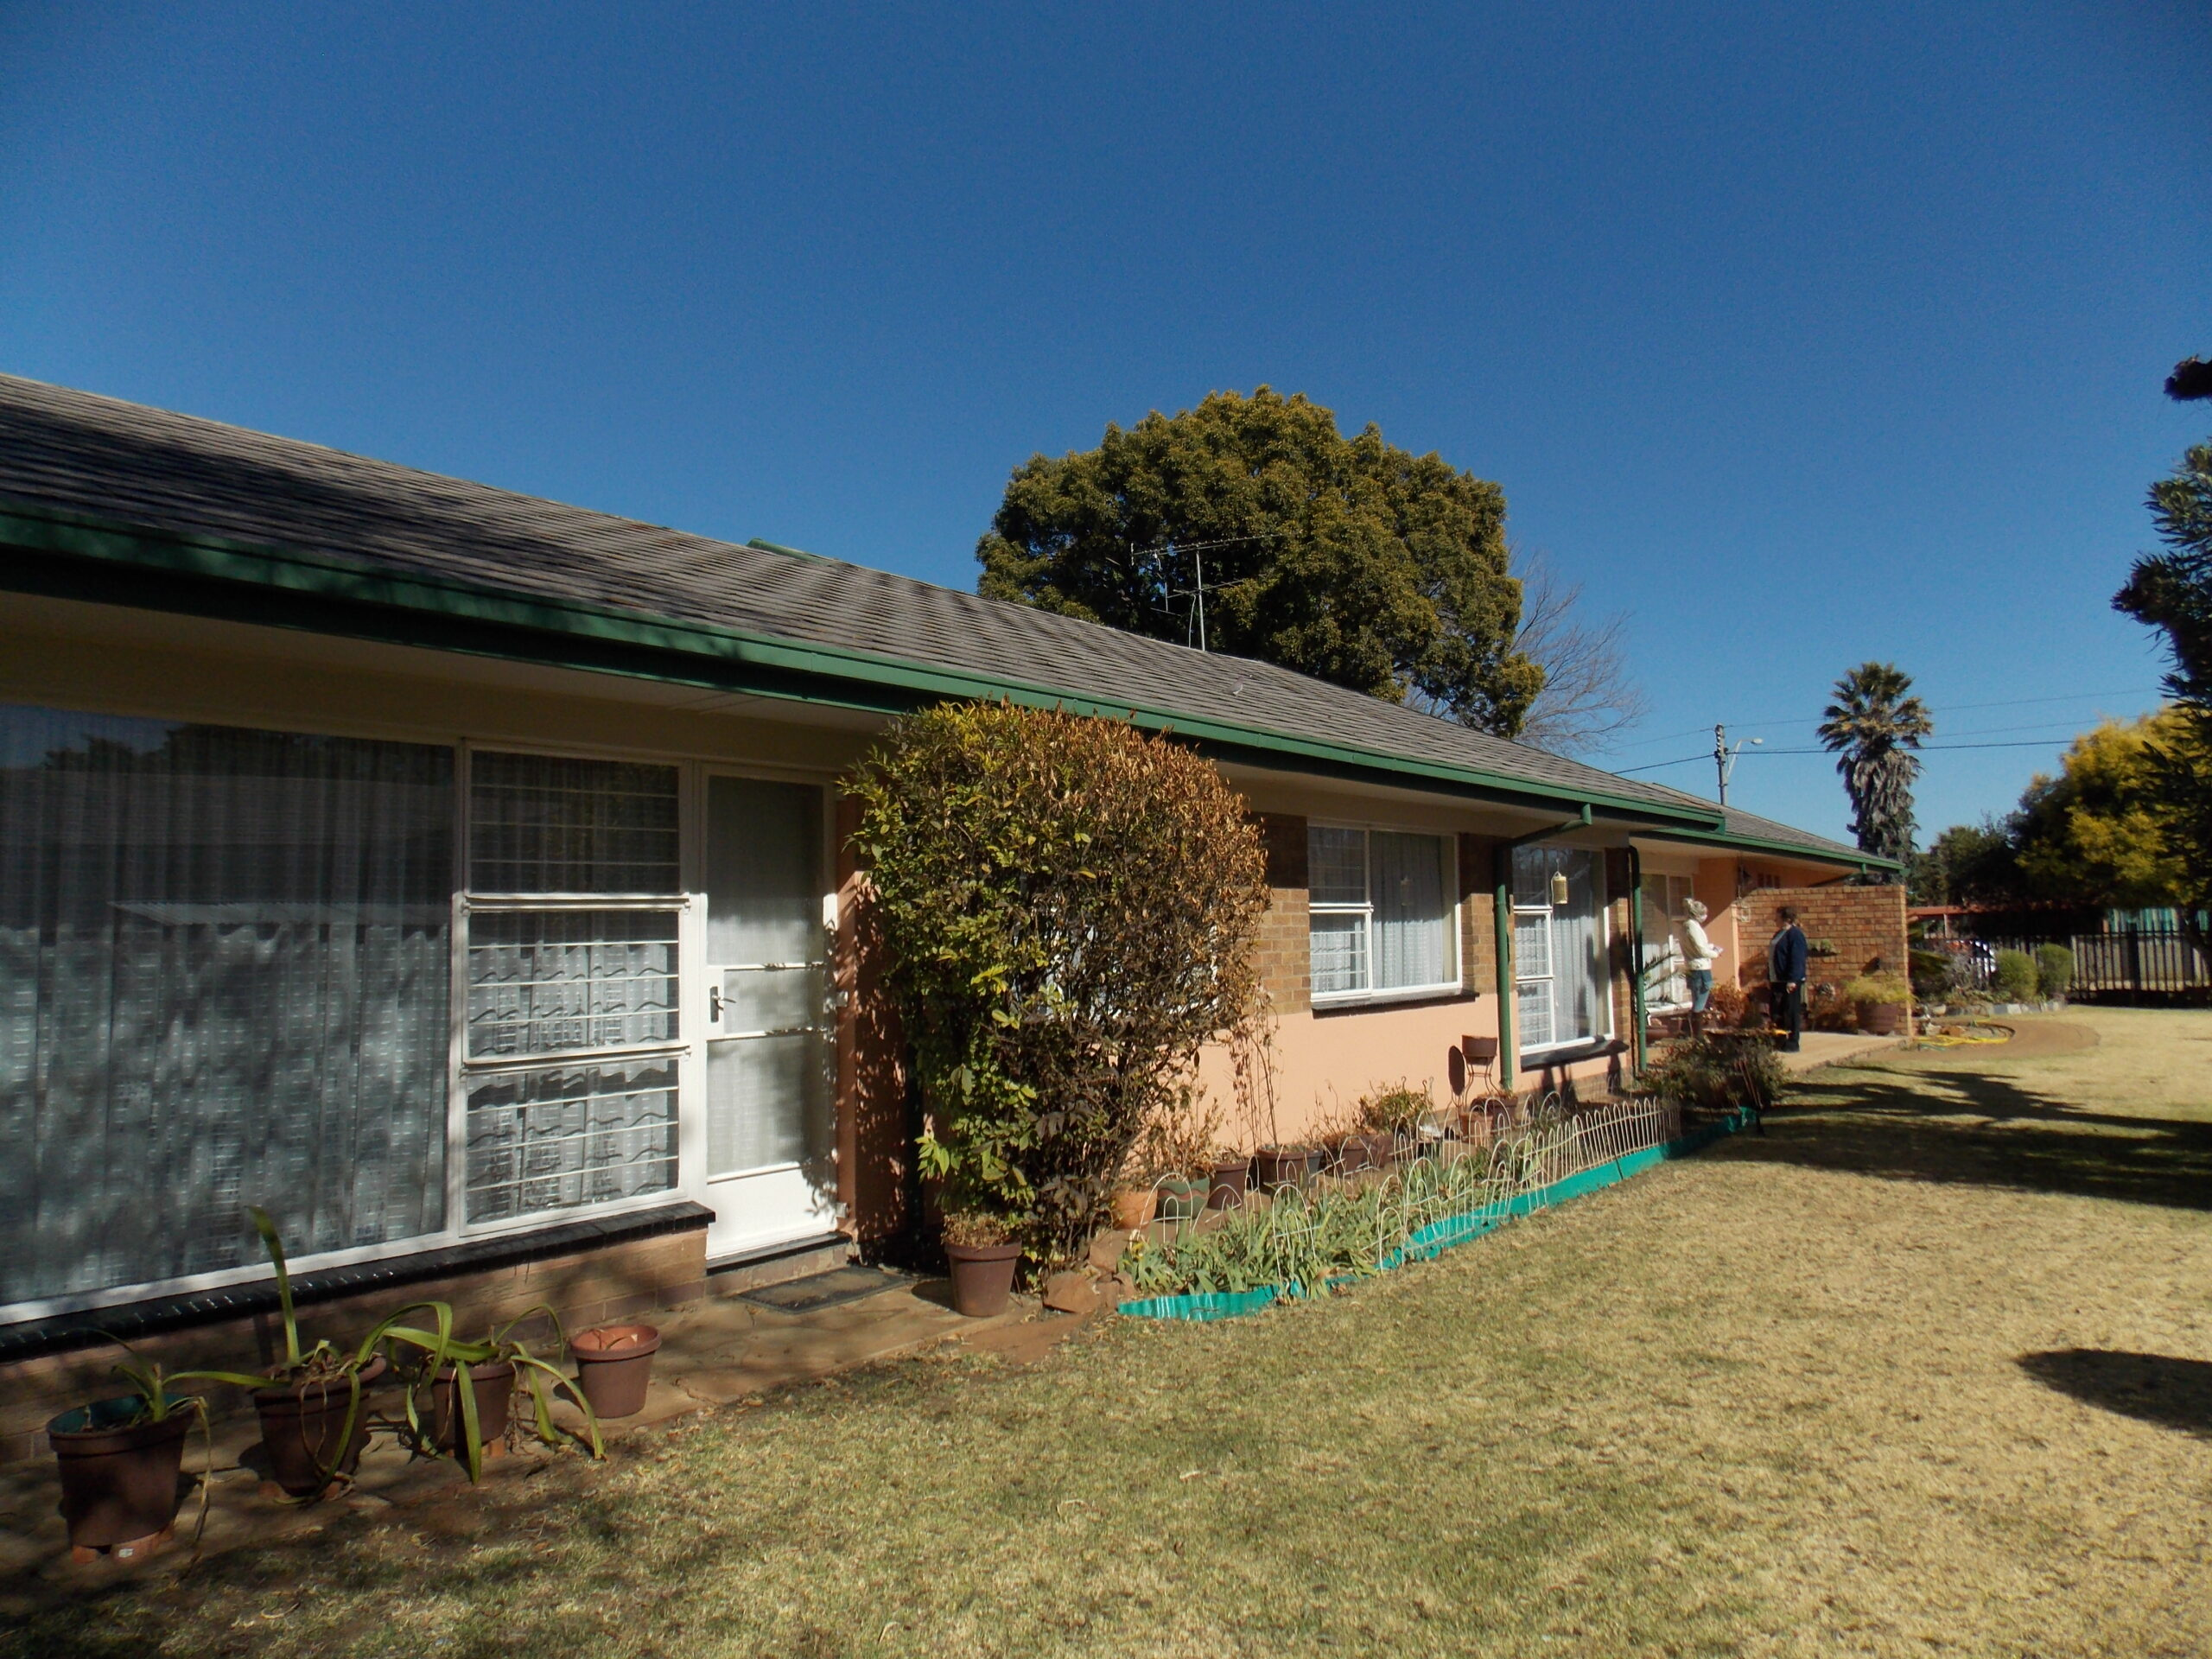 STUNNING, CHARMING, FAMILY HOME. WELL PRICED. READY TO GO